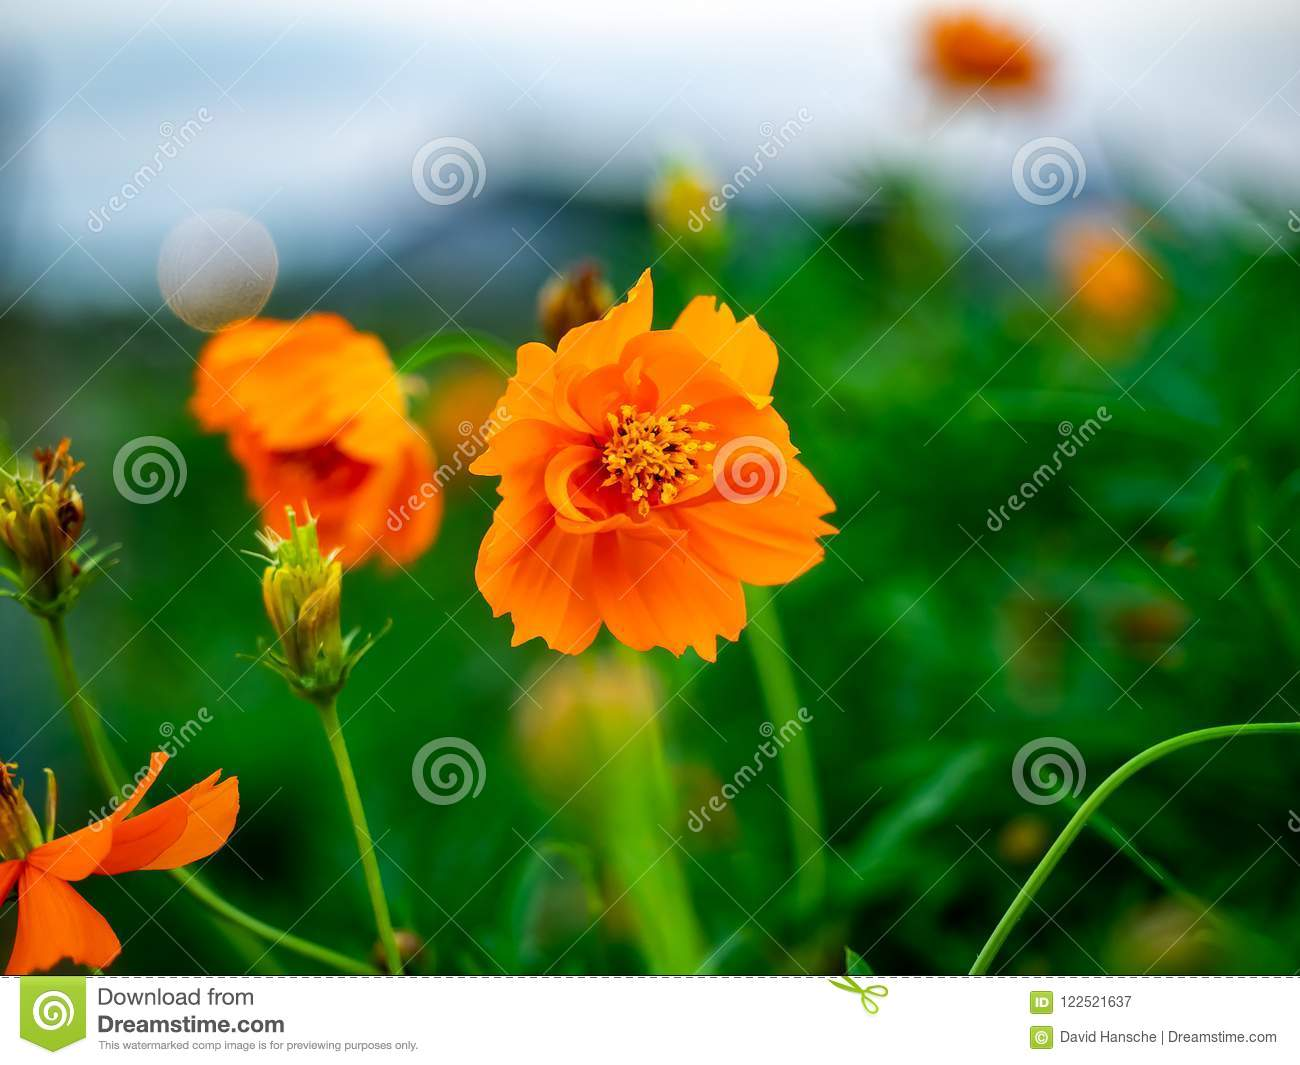 A Small Orange Cosmos Flower In A Field Stock Image Image Of